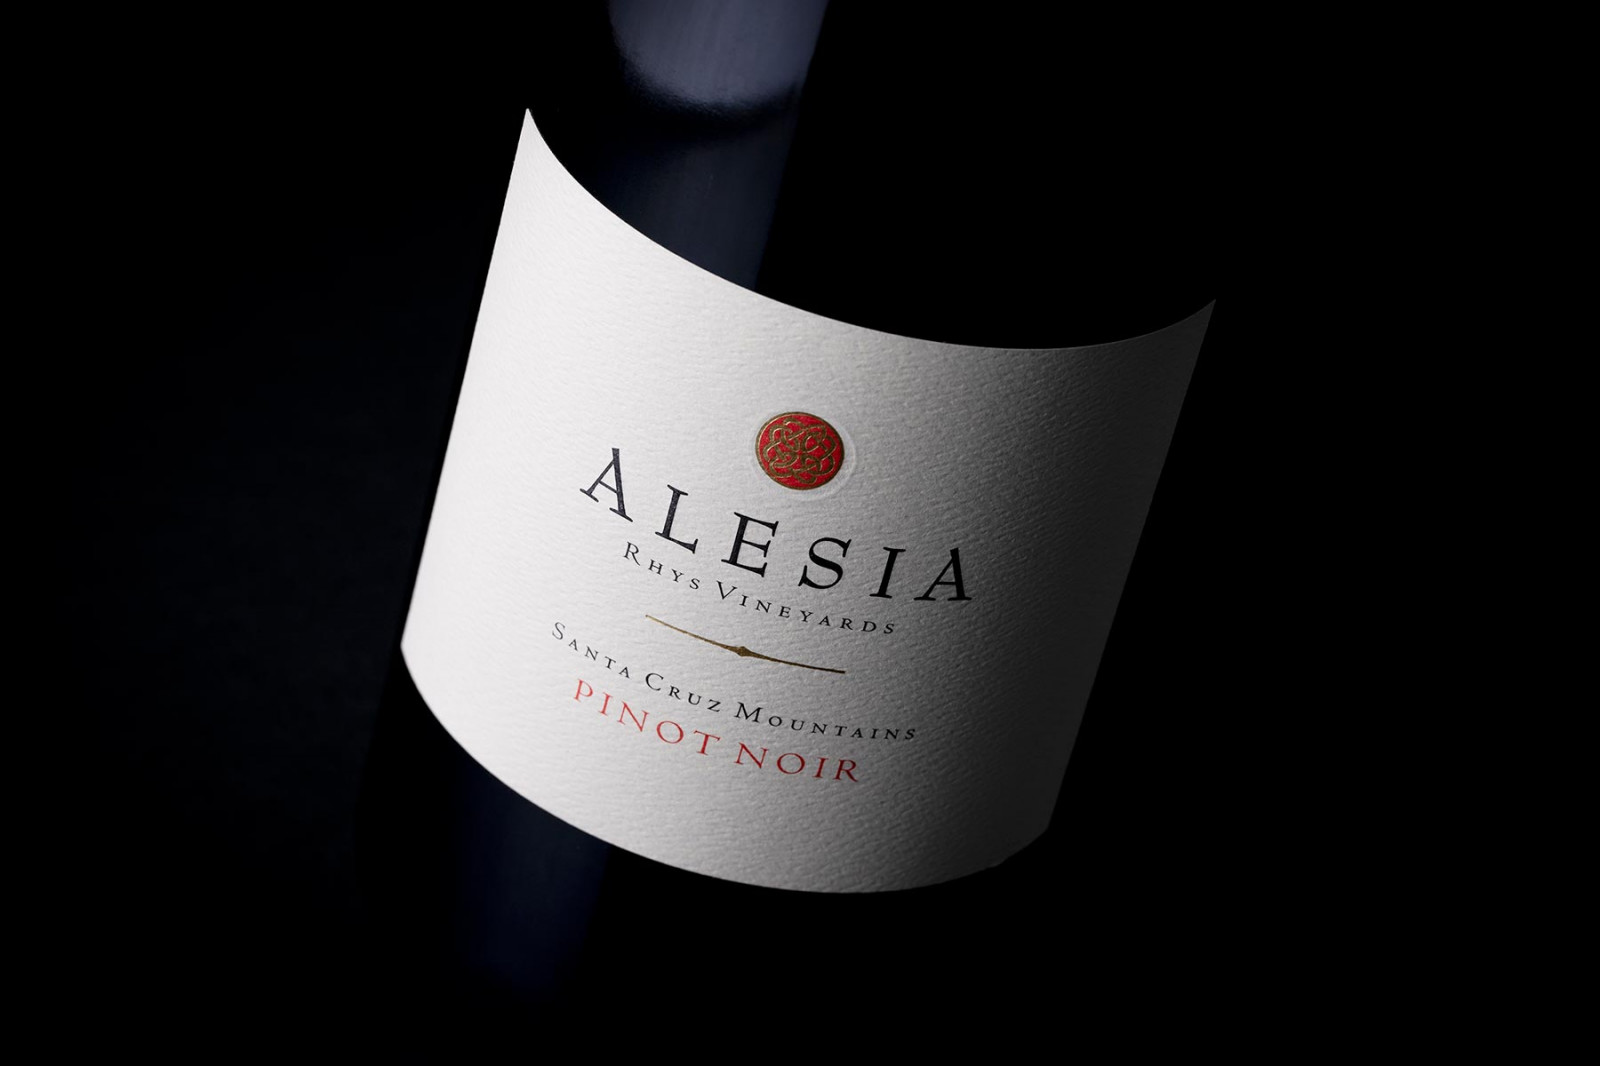 2018 Alesia Santa Cruz Mountains Pinot Noir  - Rhys Vineyards